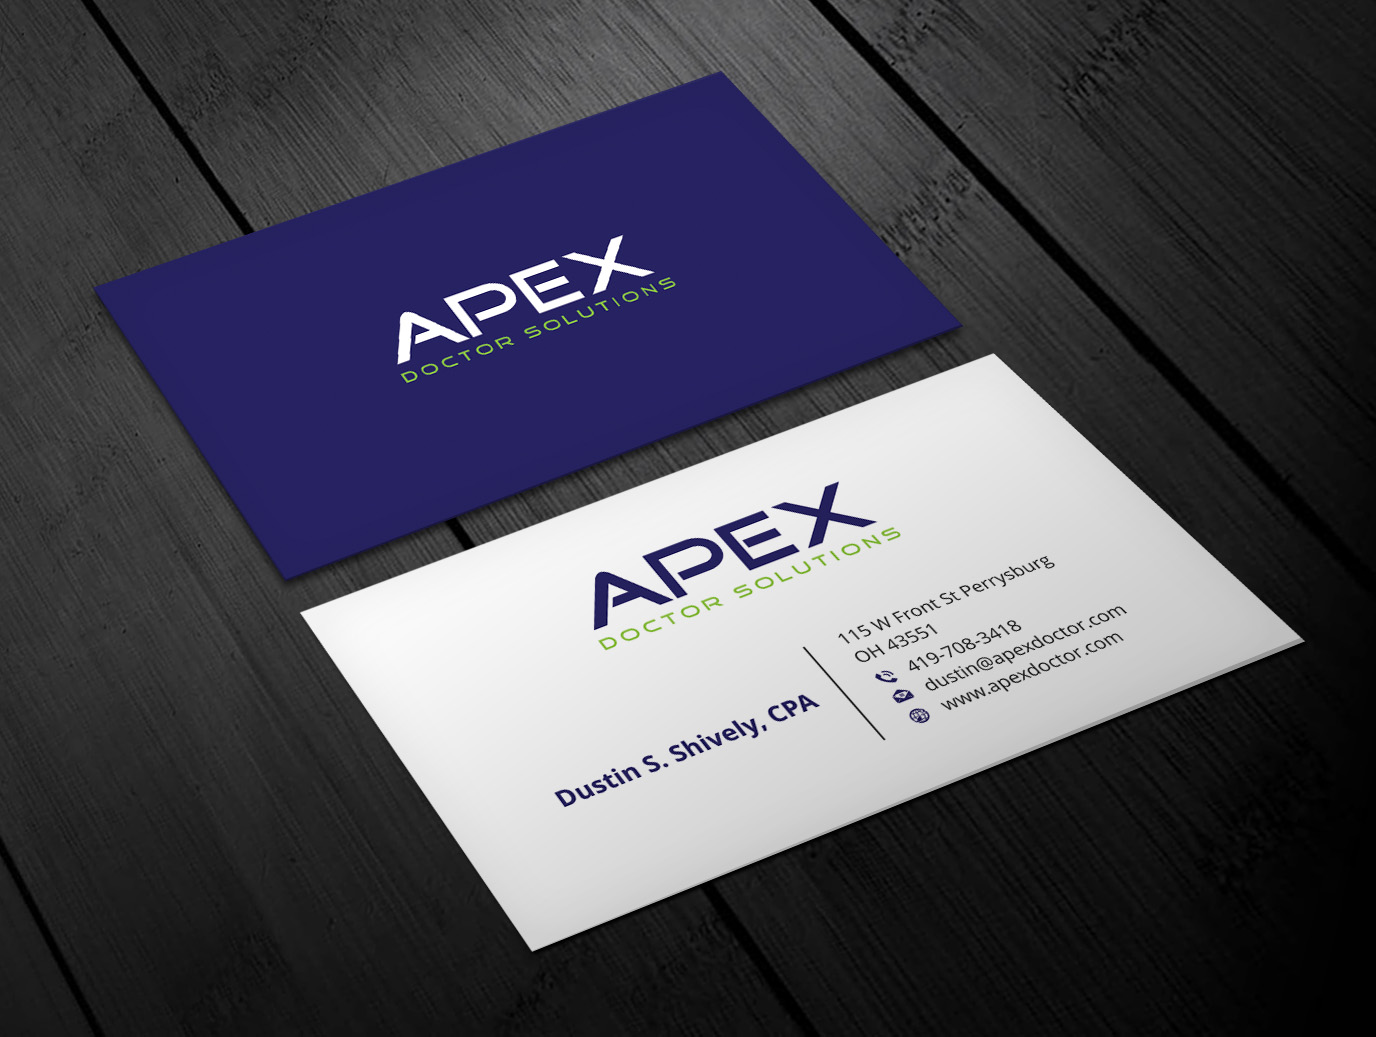 Elegant playful business business card design for usa chemical business card design by xpert for usa chemical supply design 15827818 reheart Images